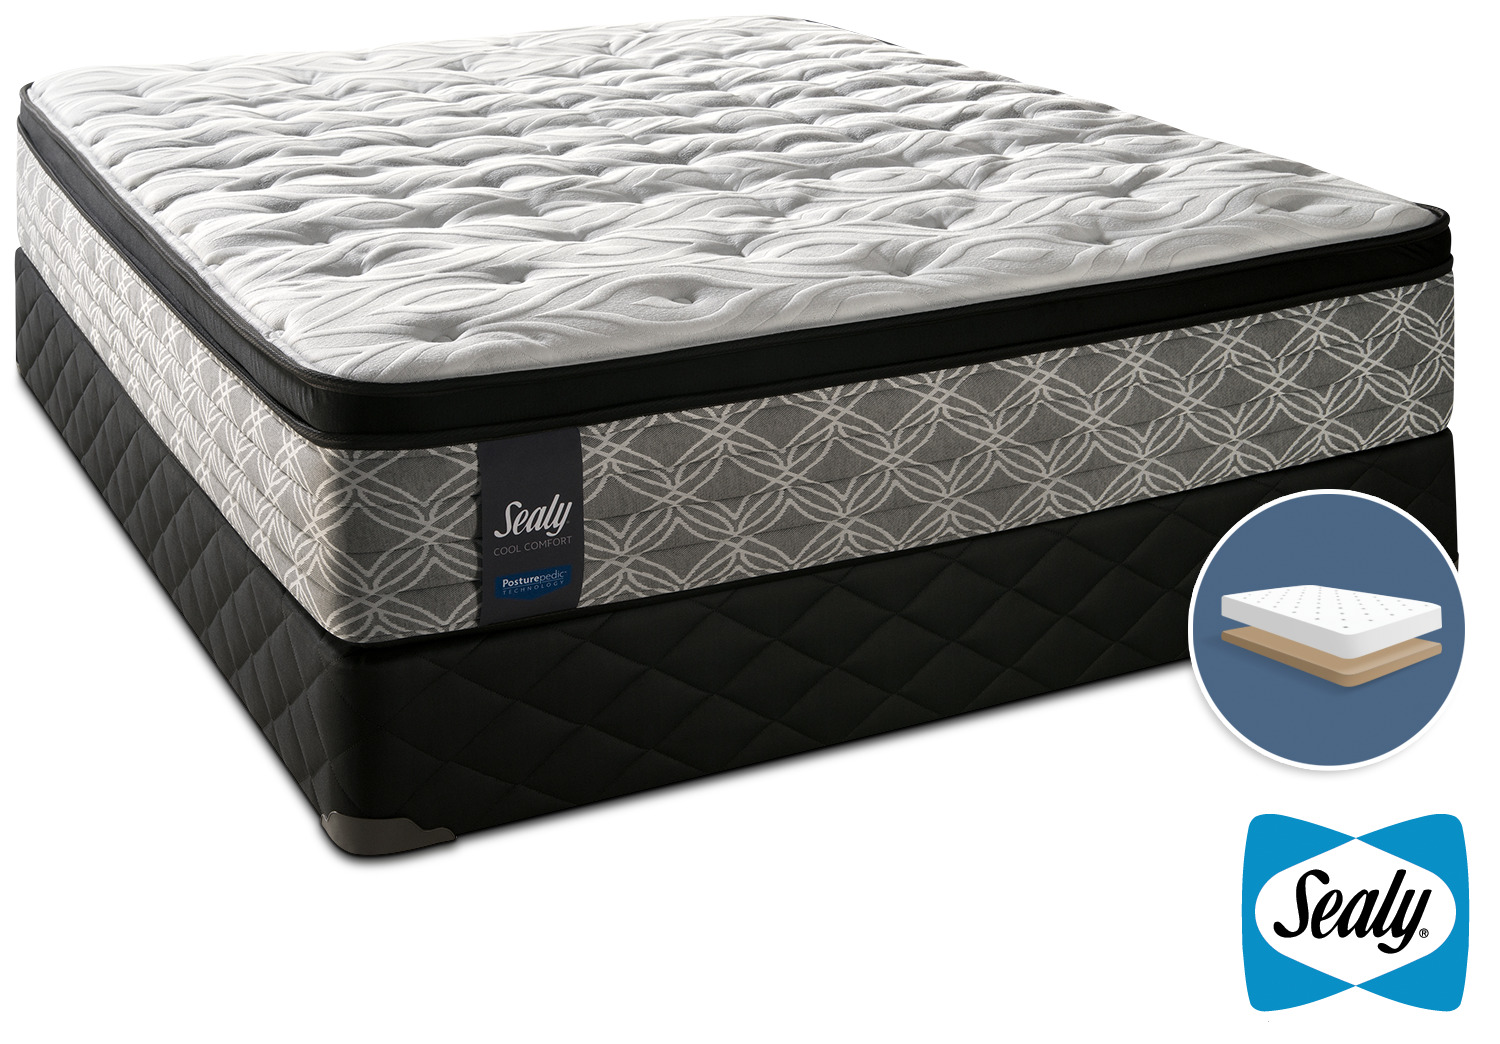 Sealy Super Nova Cushion Firm Full Mattress and Low-Profile Boxspring Set